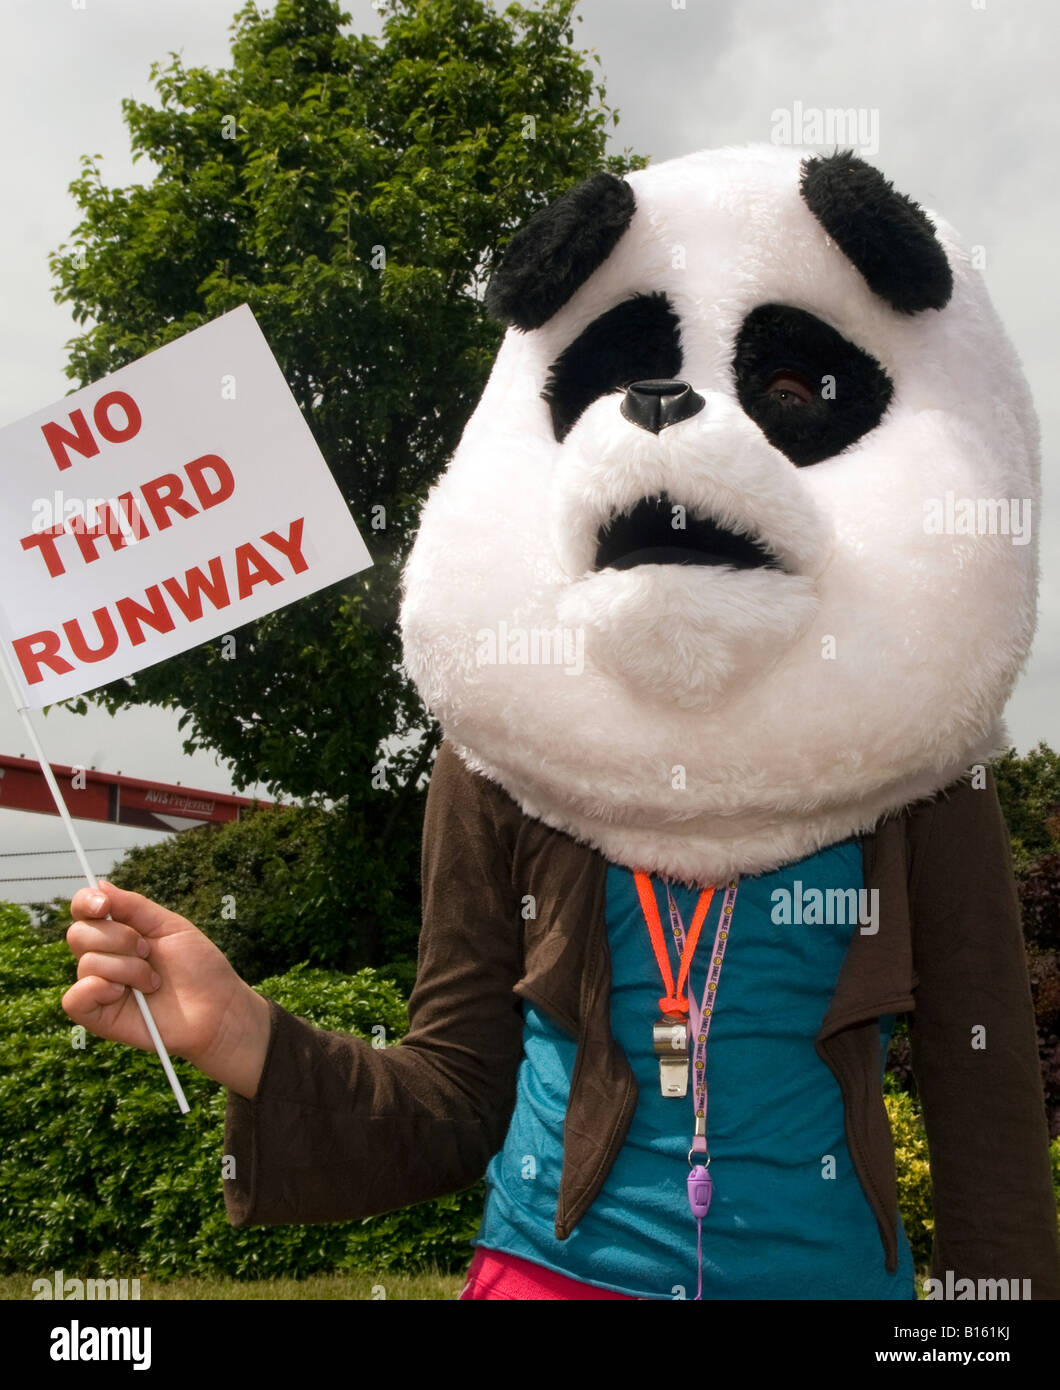 WWF demonstrating against no third runway at Heathrow airport, 30,05.2008 - Stock Image